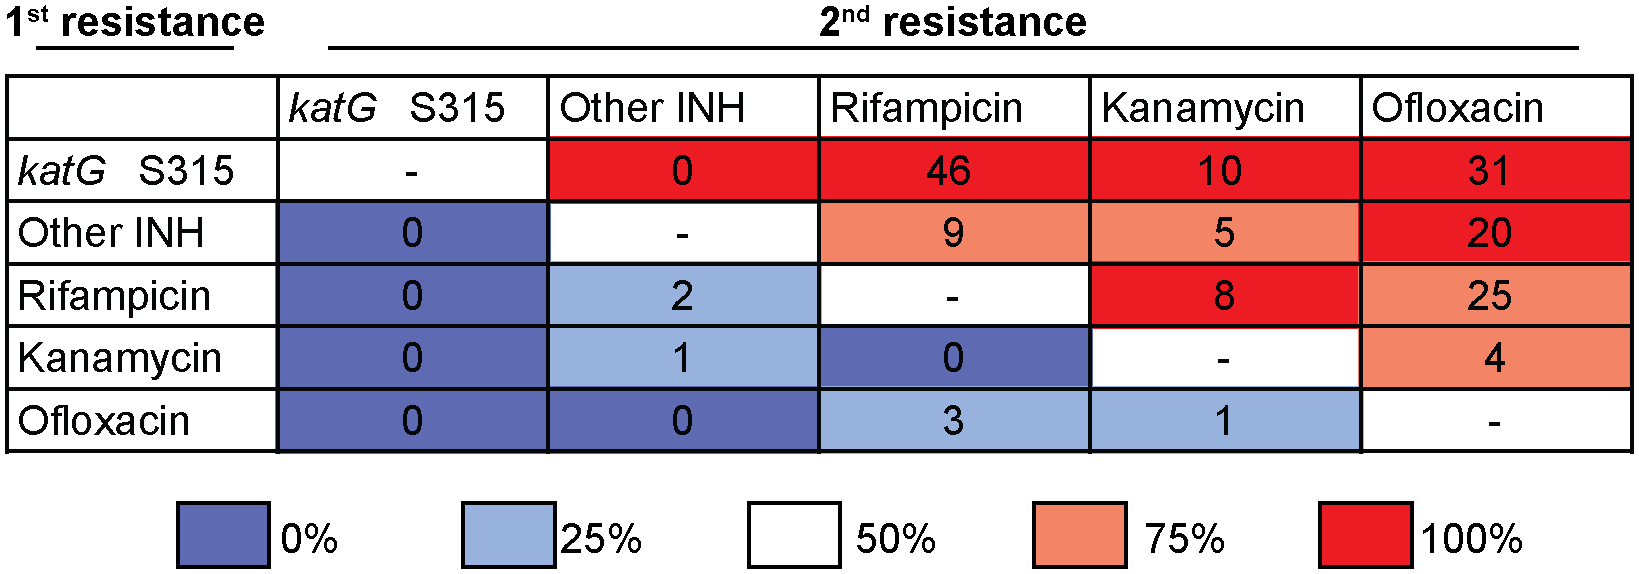 Isoniazid resistance is the first step towards drug resistance.